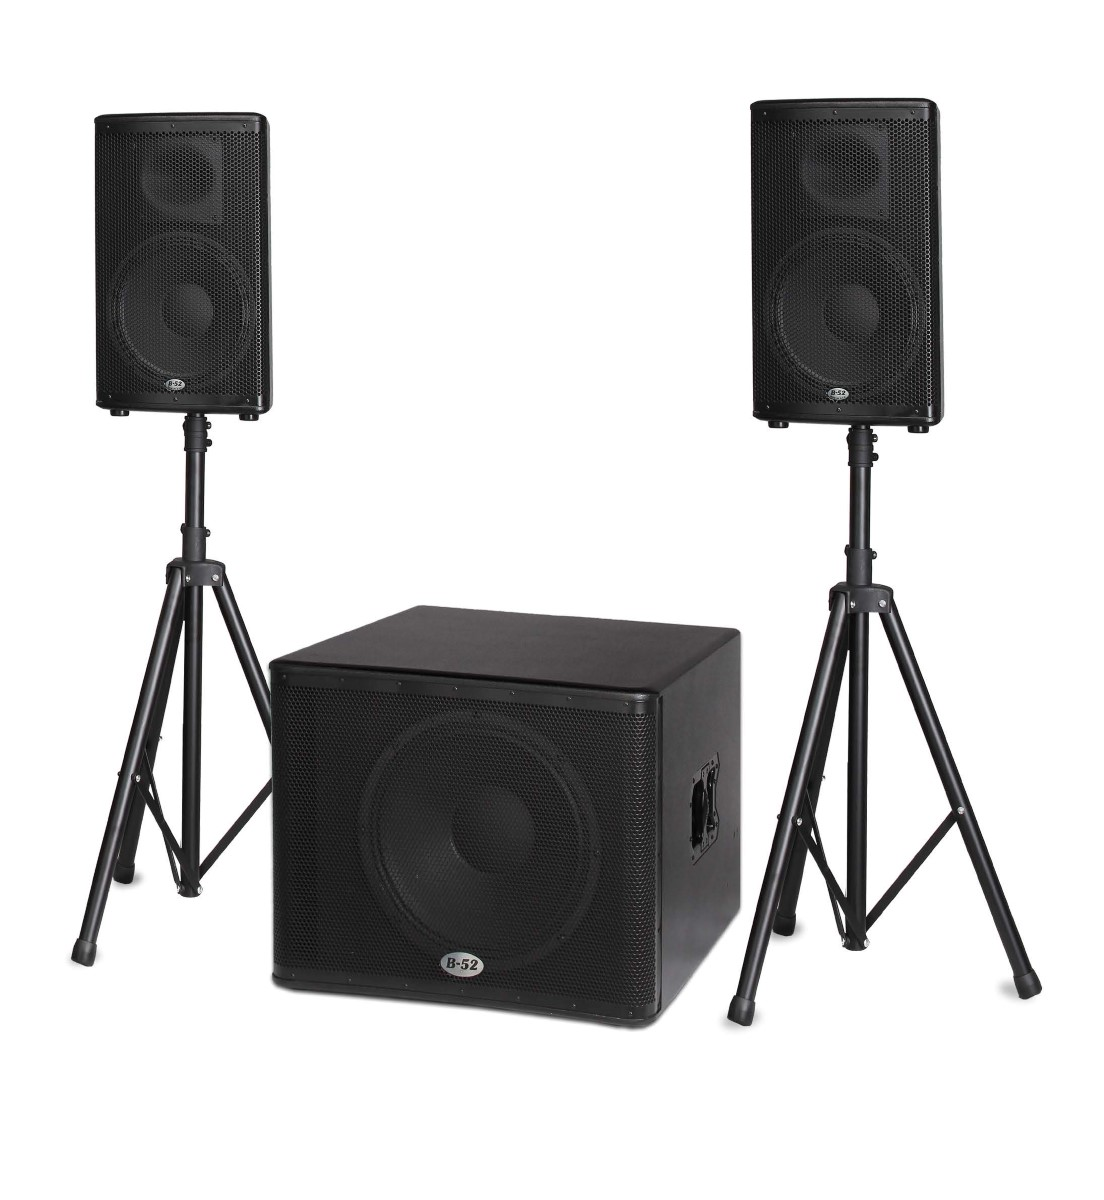 B-52 Pro Matrix-2500 Bbe - 1600-Watt Active Speaker System